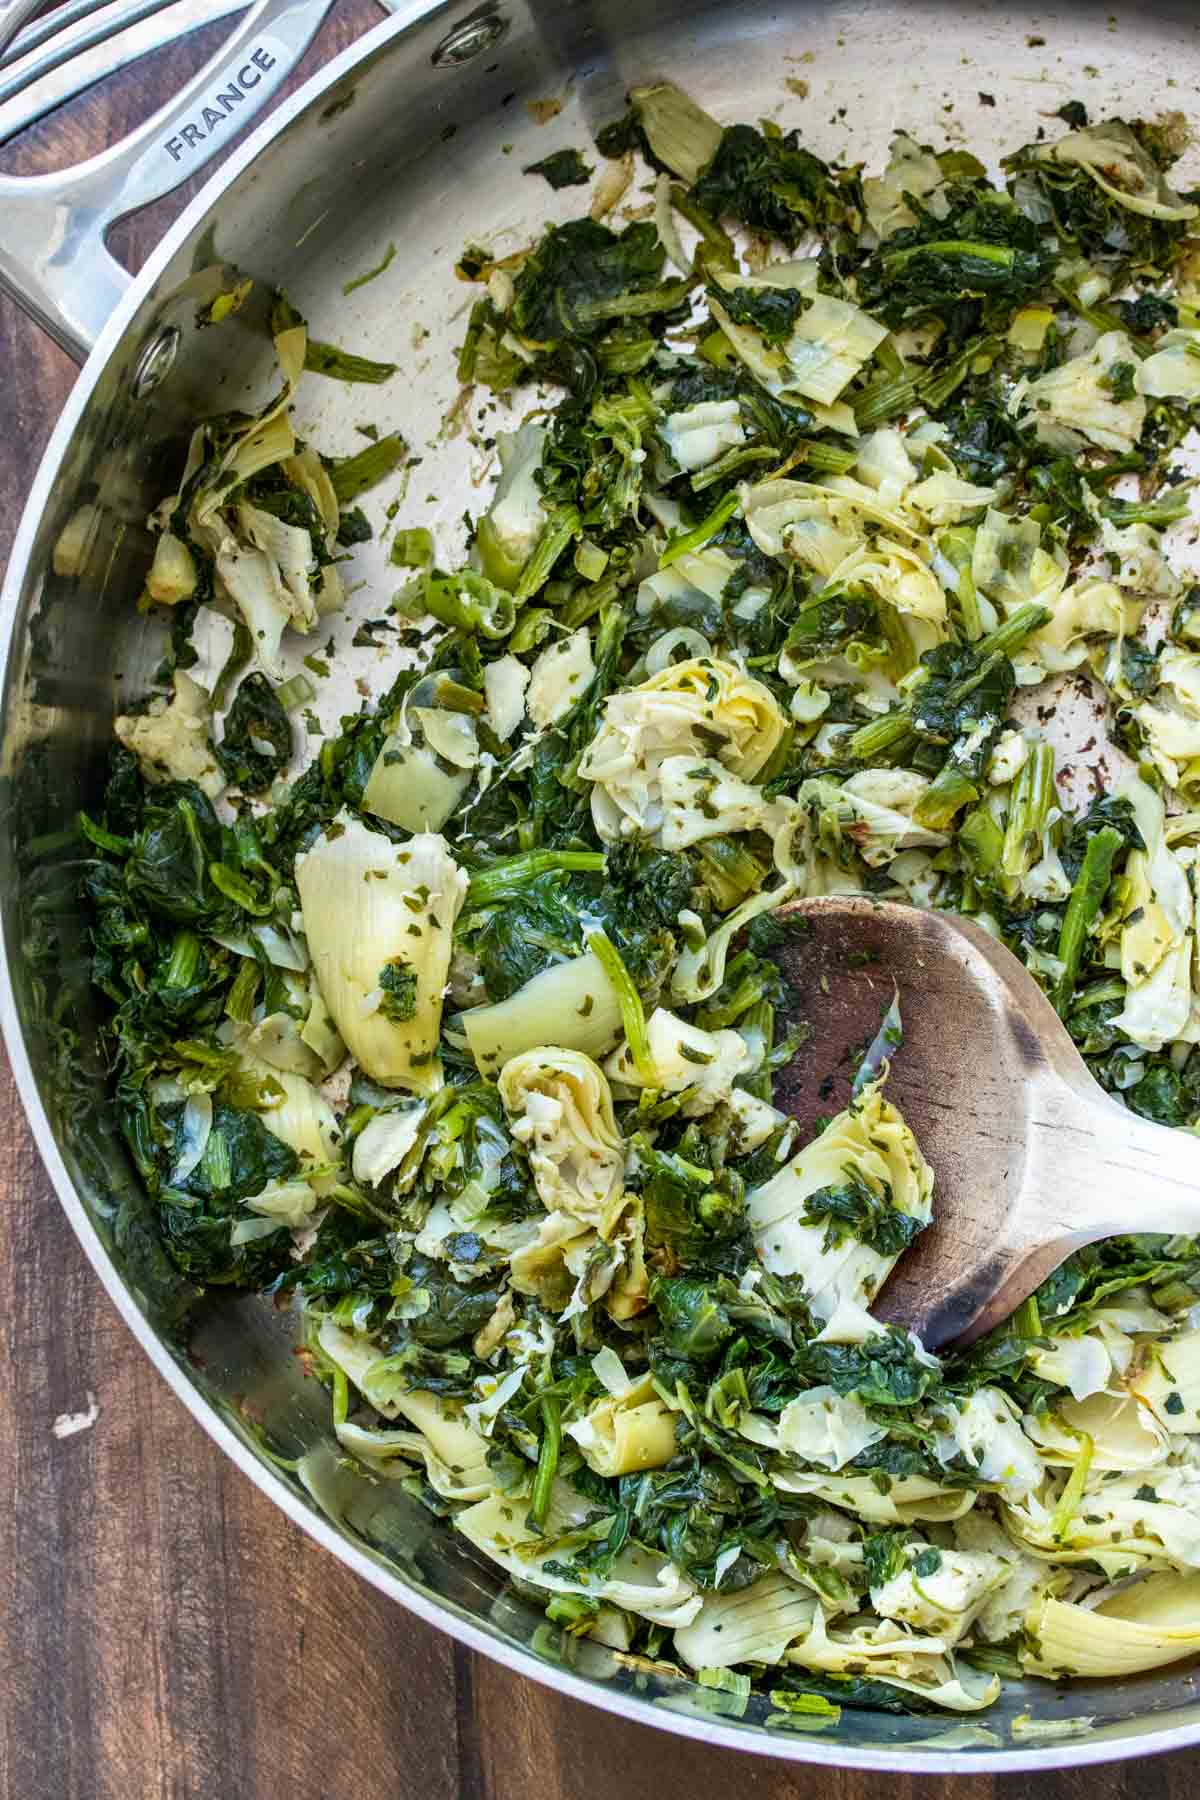 Spinach, artichokes and green onion sautéing in pan